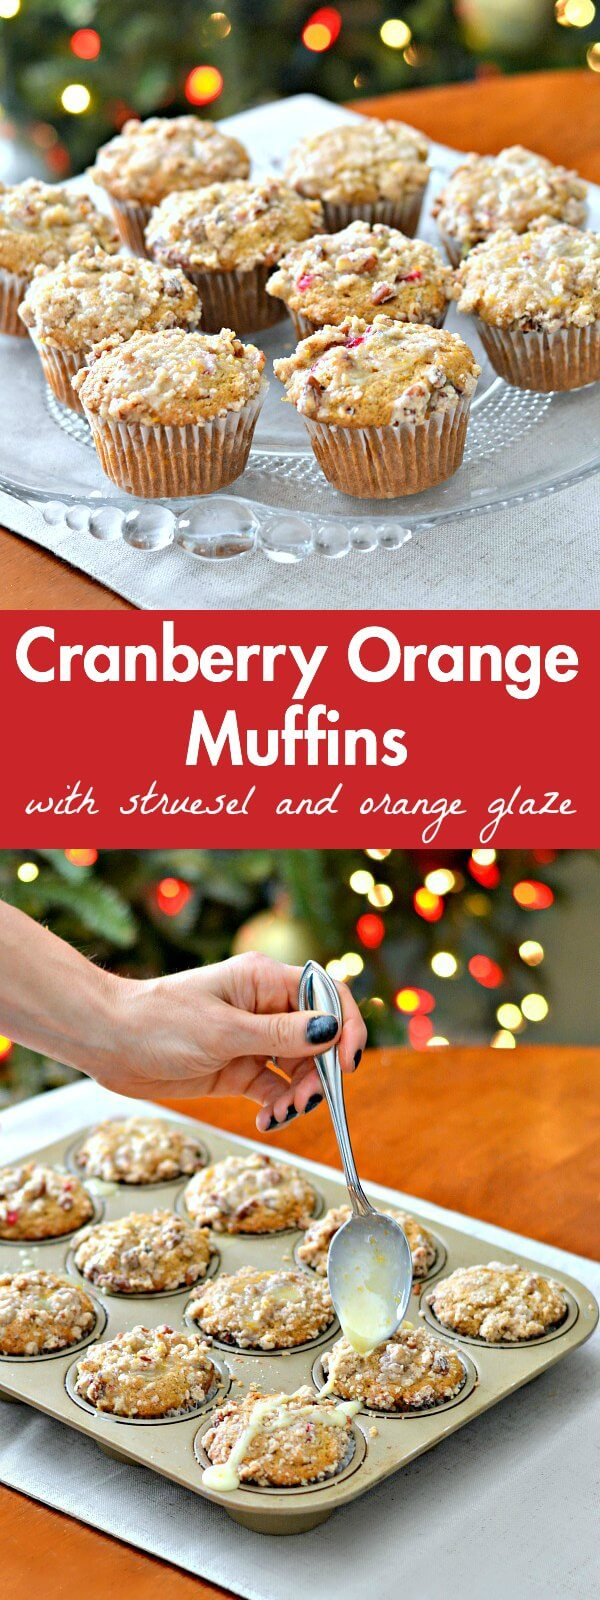 Cranberry Orange Muffins with Streusel and Orange Glaze